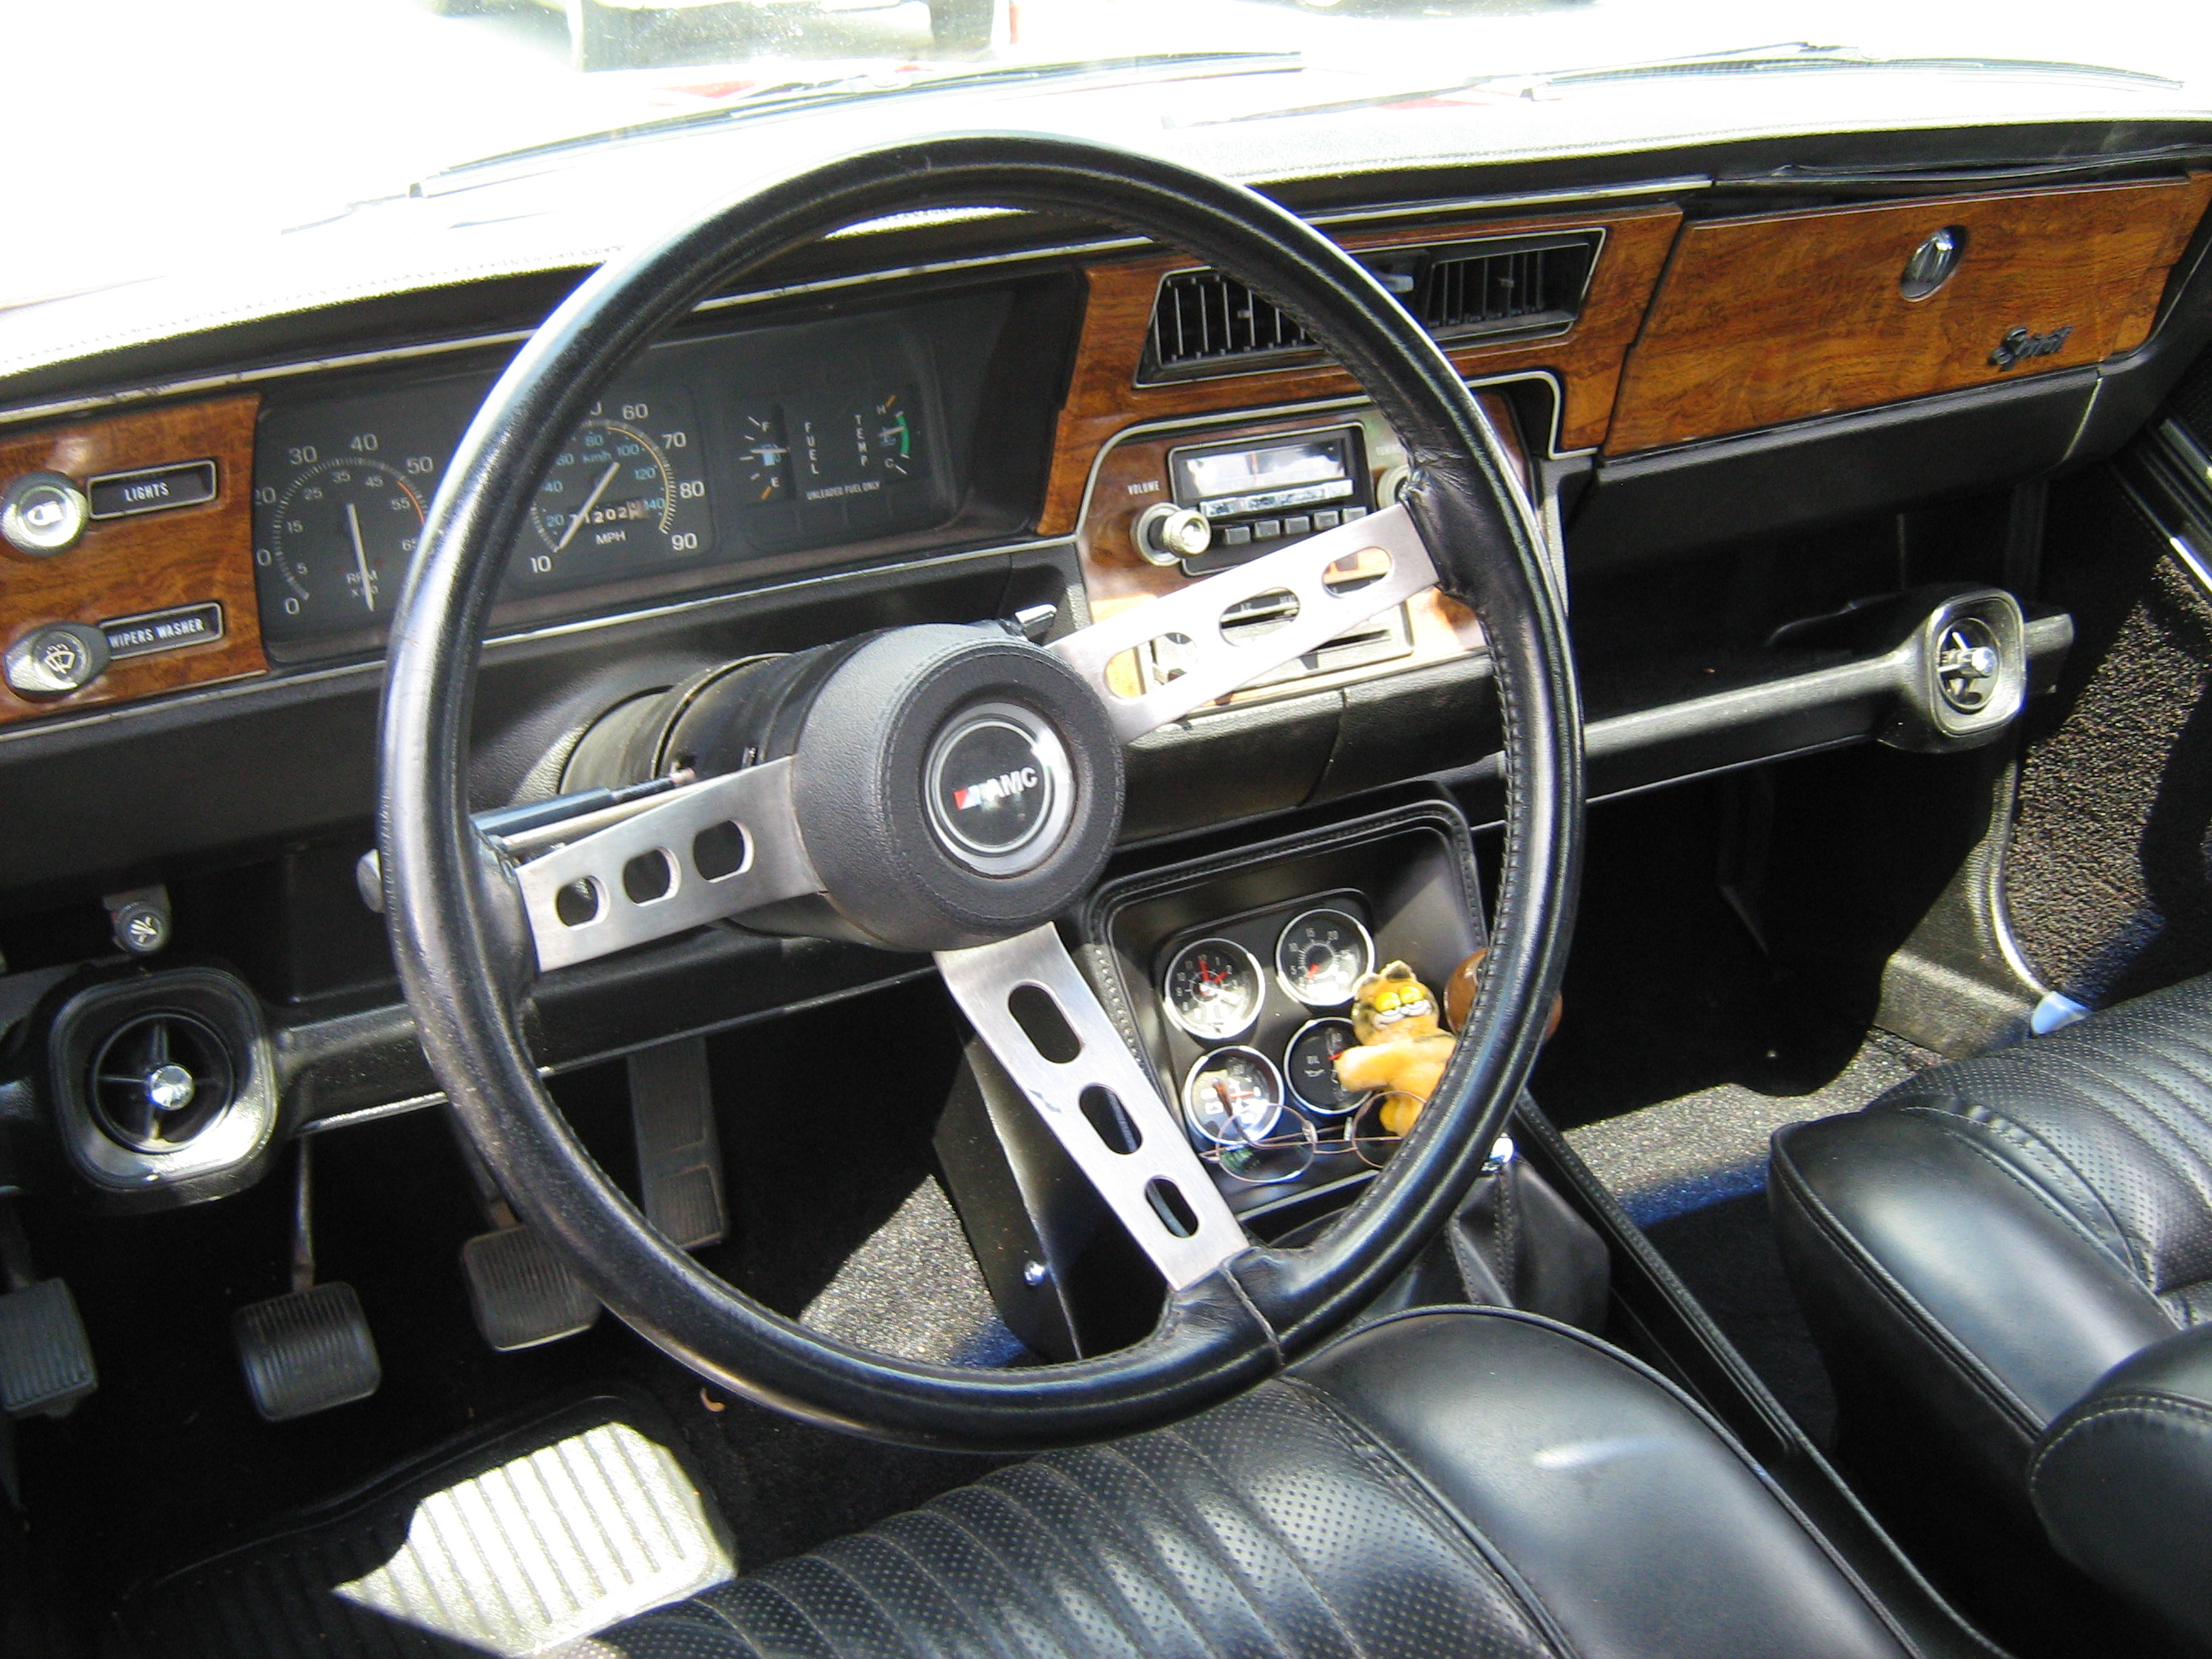 file 1979 amc spirit gt v8 russet wikimedia commons. Black Bedroom Furniture Sets. Home Design Ideas